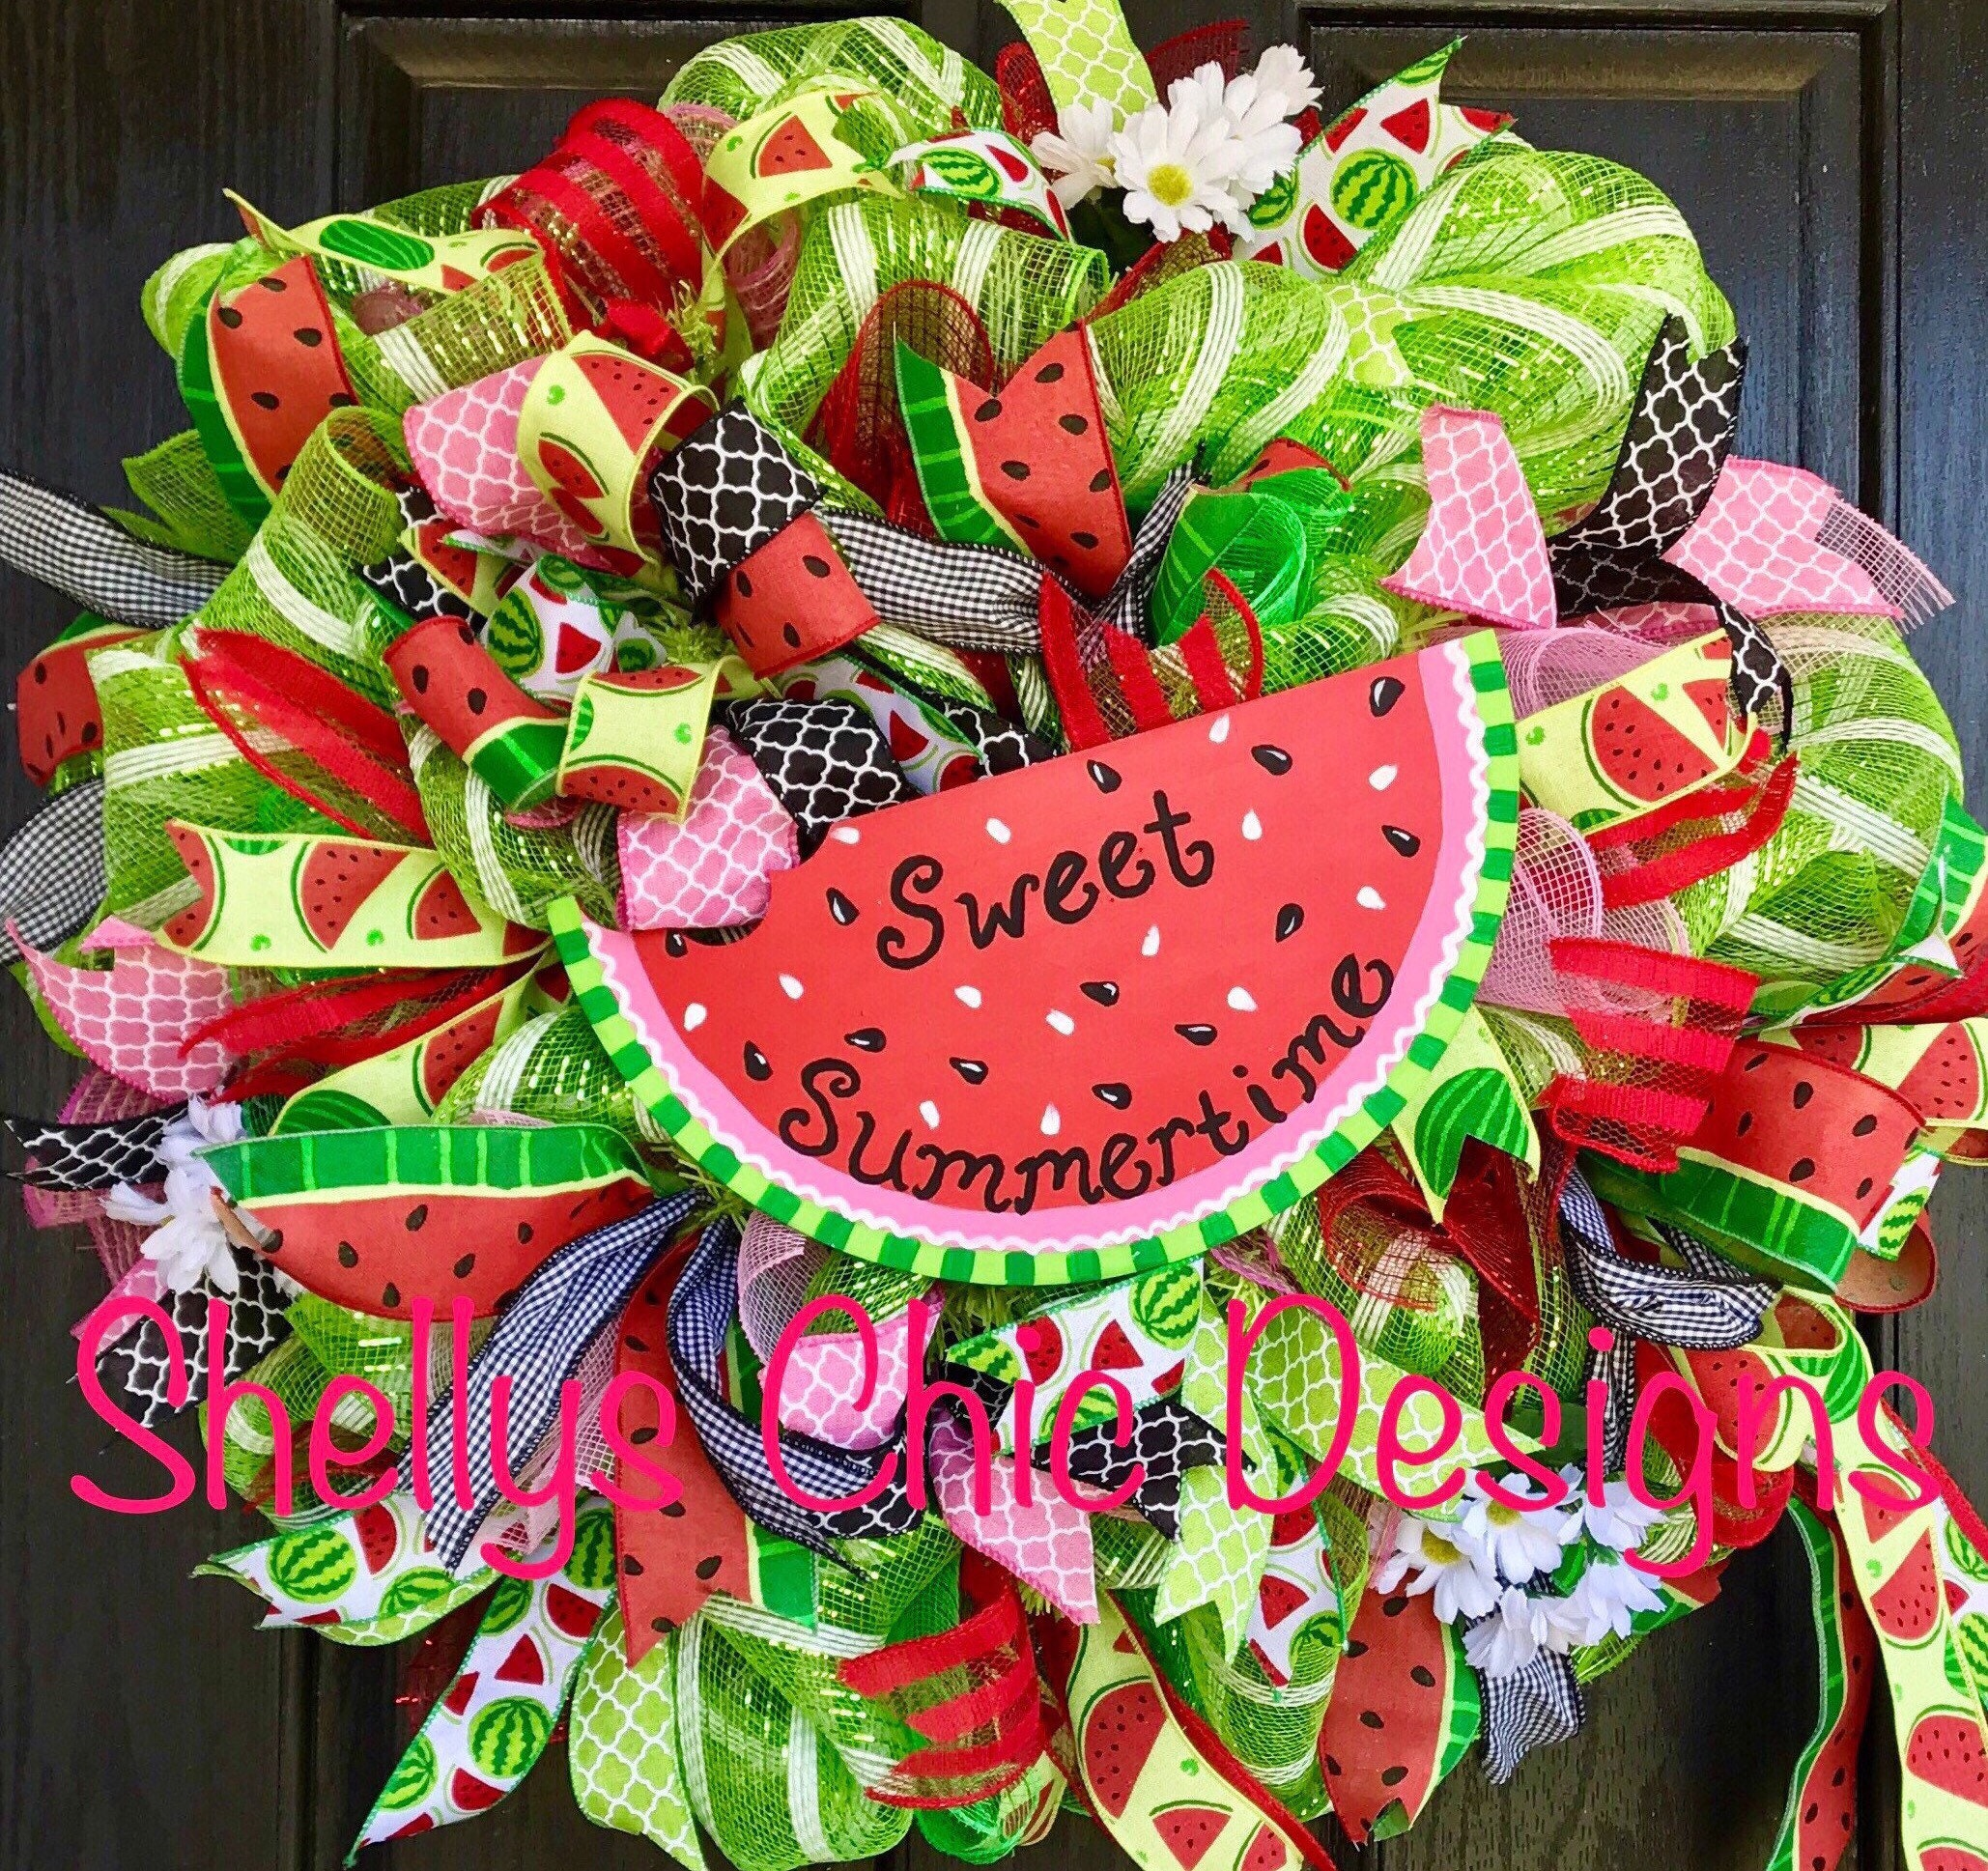 Summer wreath, Watermelon deco mesh wreath, Watermelon wreath, Summer deco mesh wreath, green and pink mesh wreath, Welcome mesh wreath,